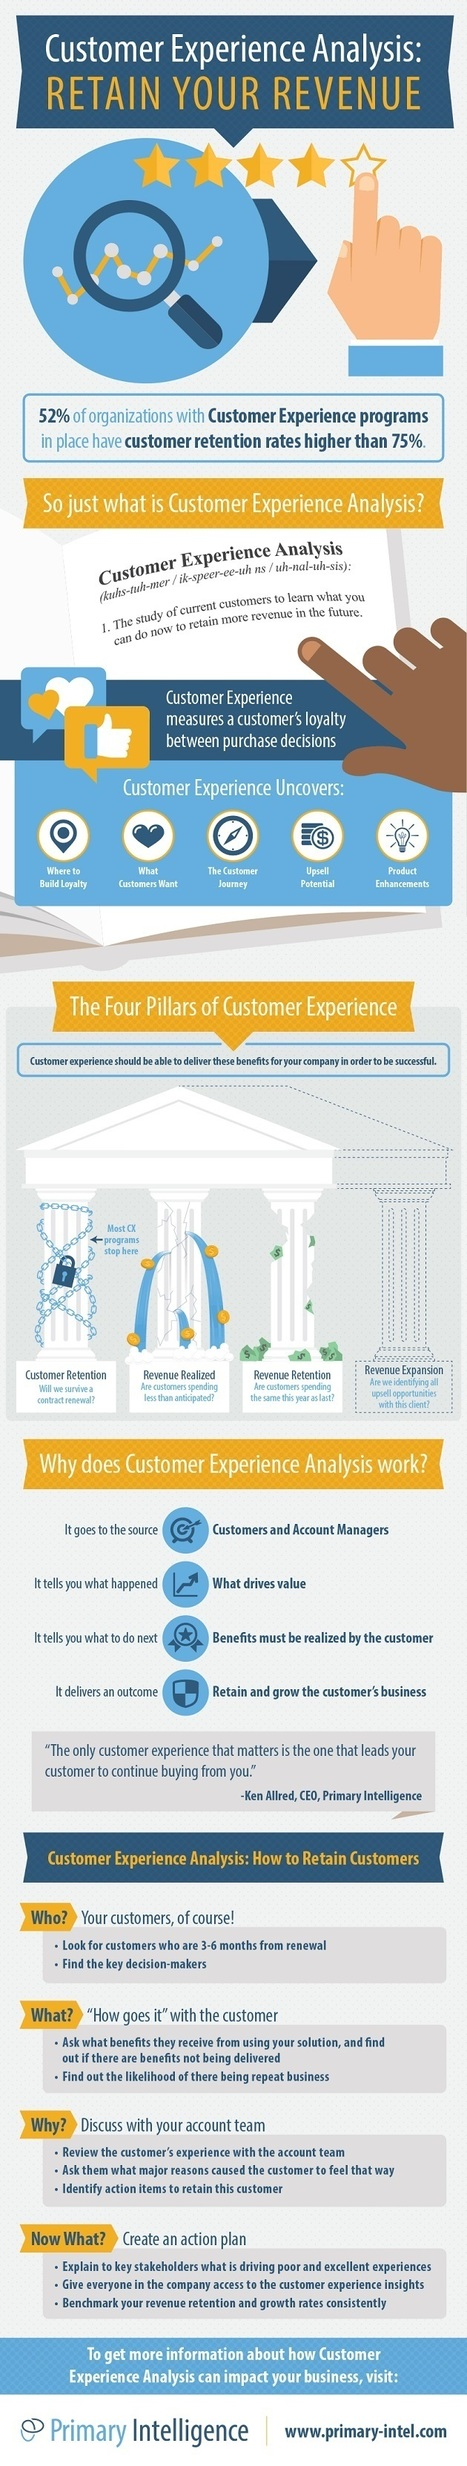 Customer Experience Analysis: How to Retain Your Customers [Infographic] | Designing  service | Scoop.it